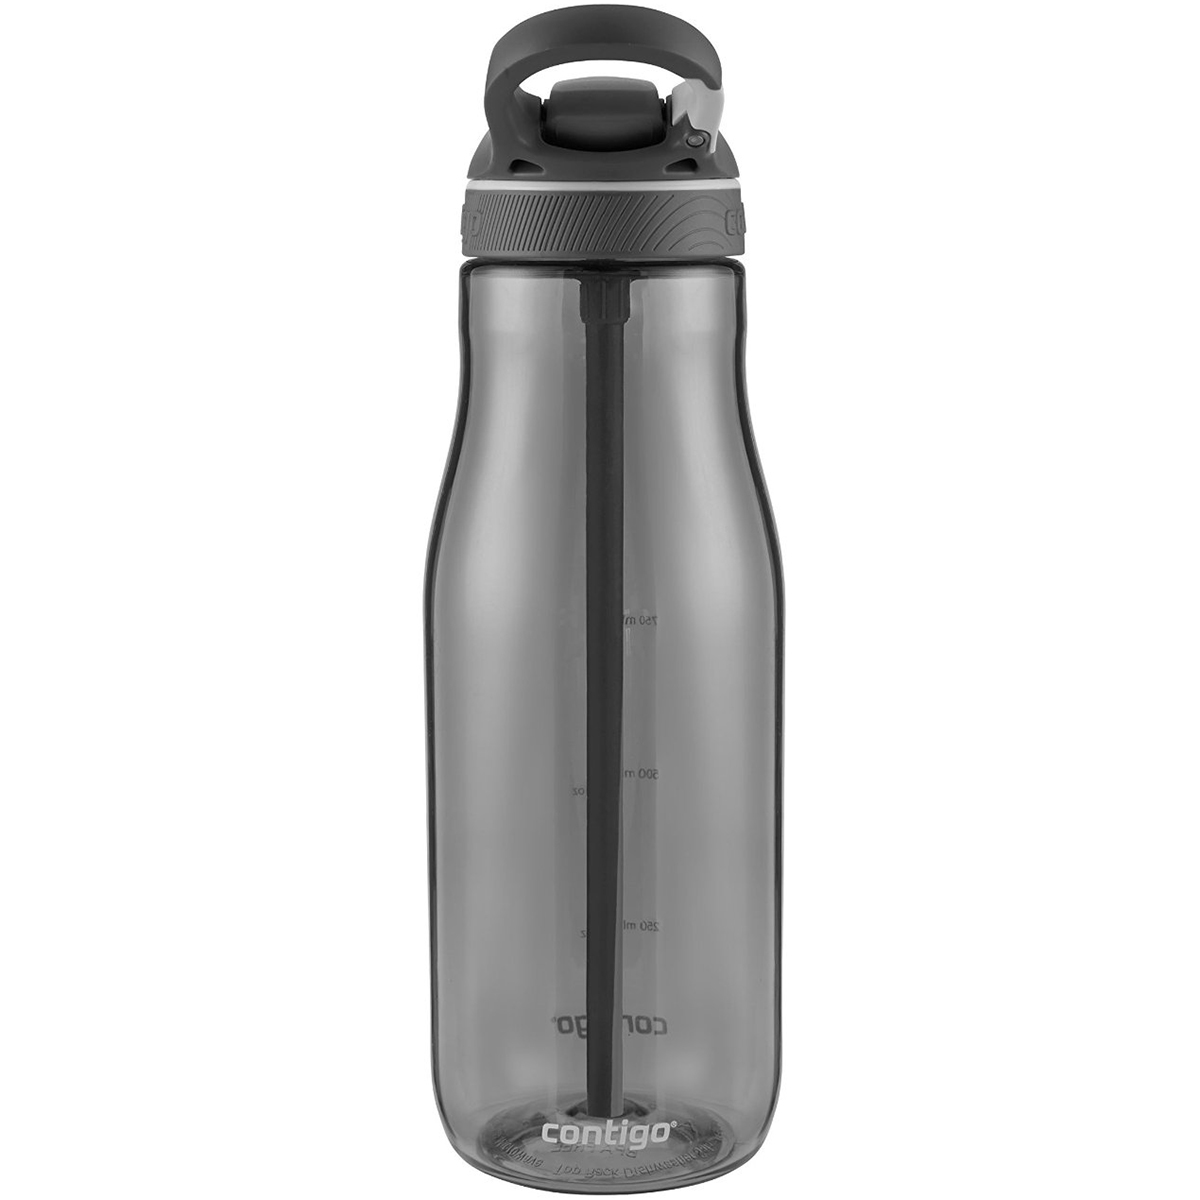 Contigo-40-oz-Ashland-Autospout-Water-Bottle thumbnail 22